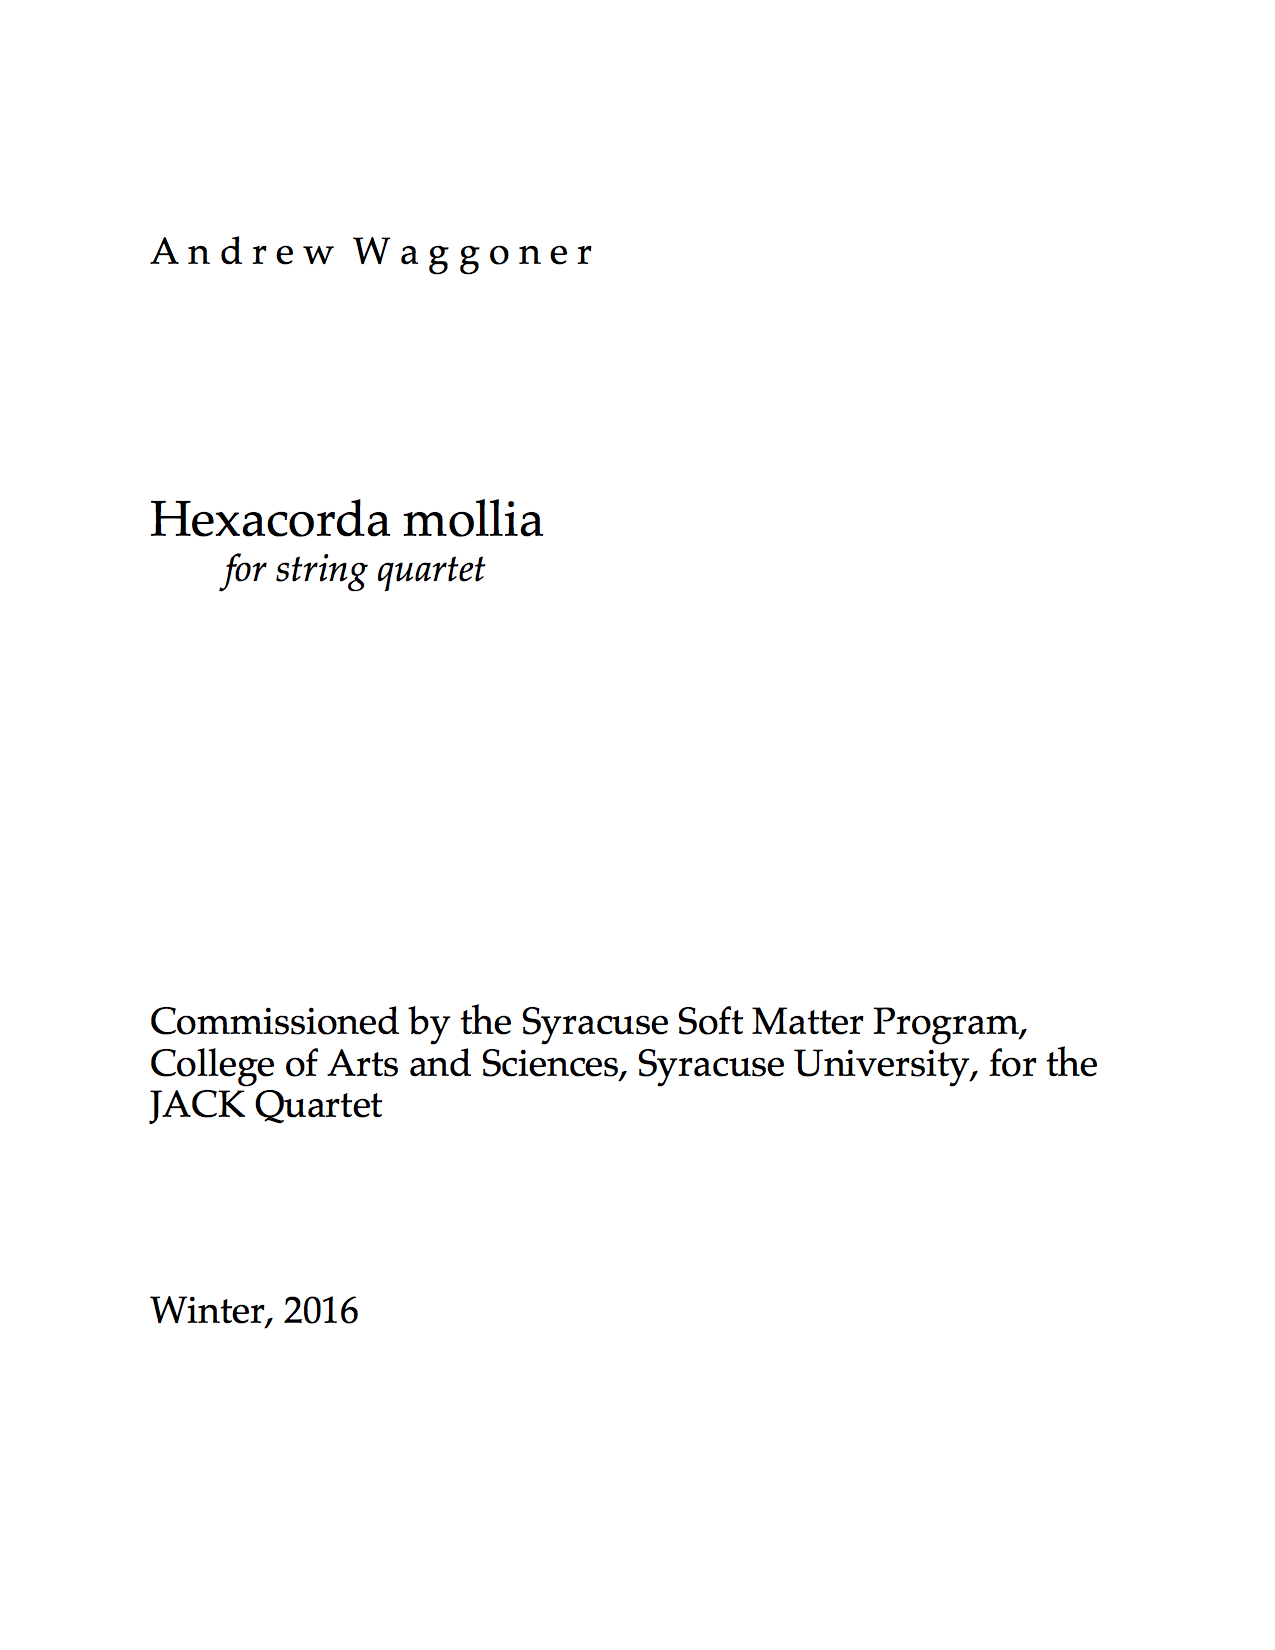 Hexachorda mollia for String Quartet